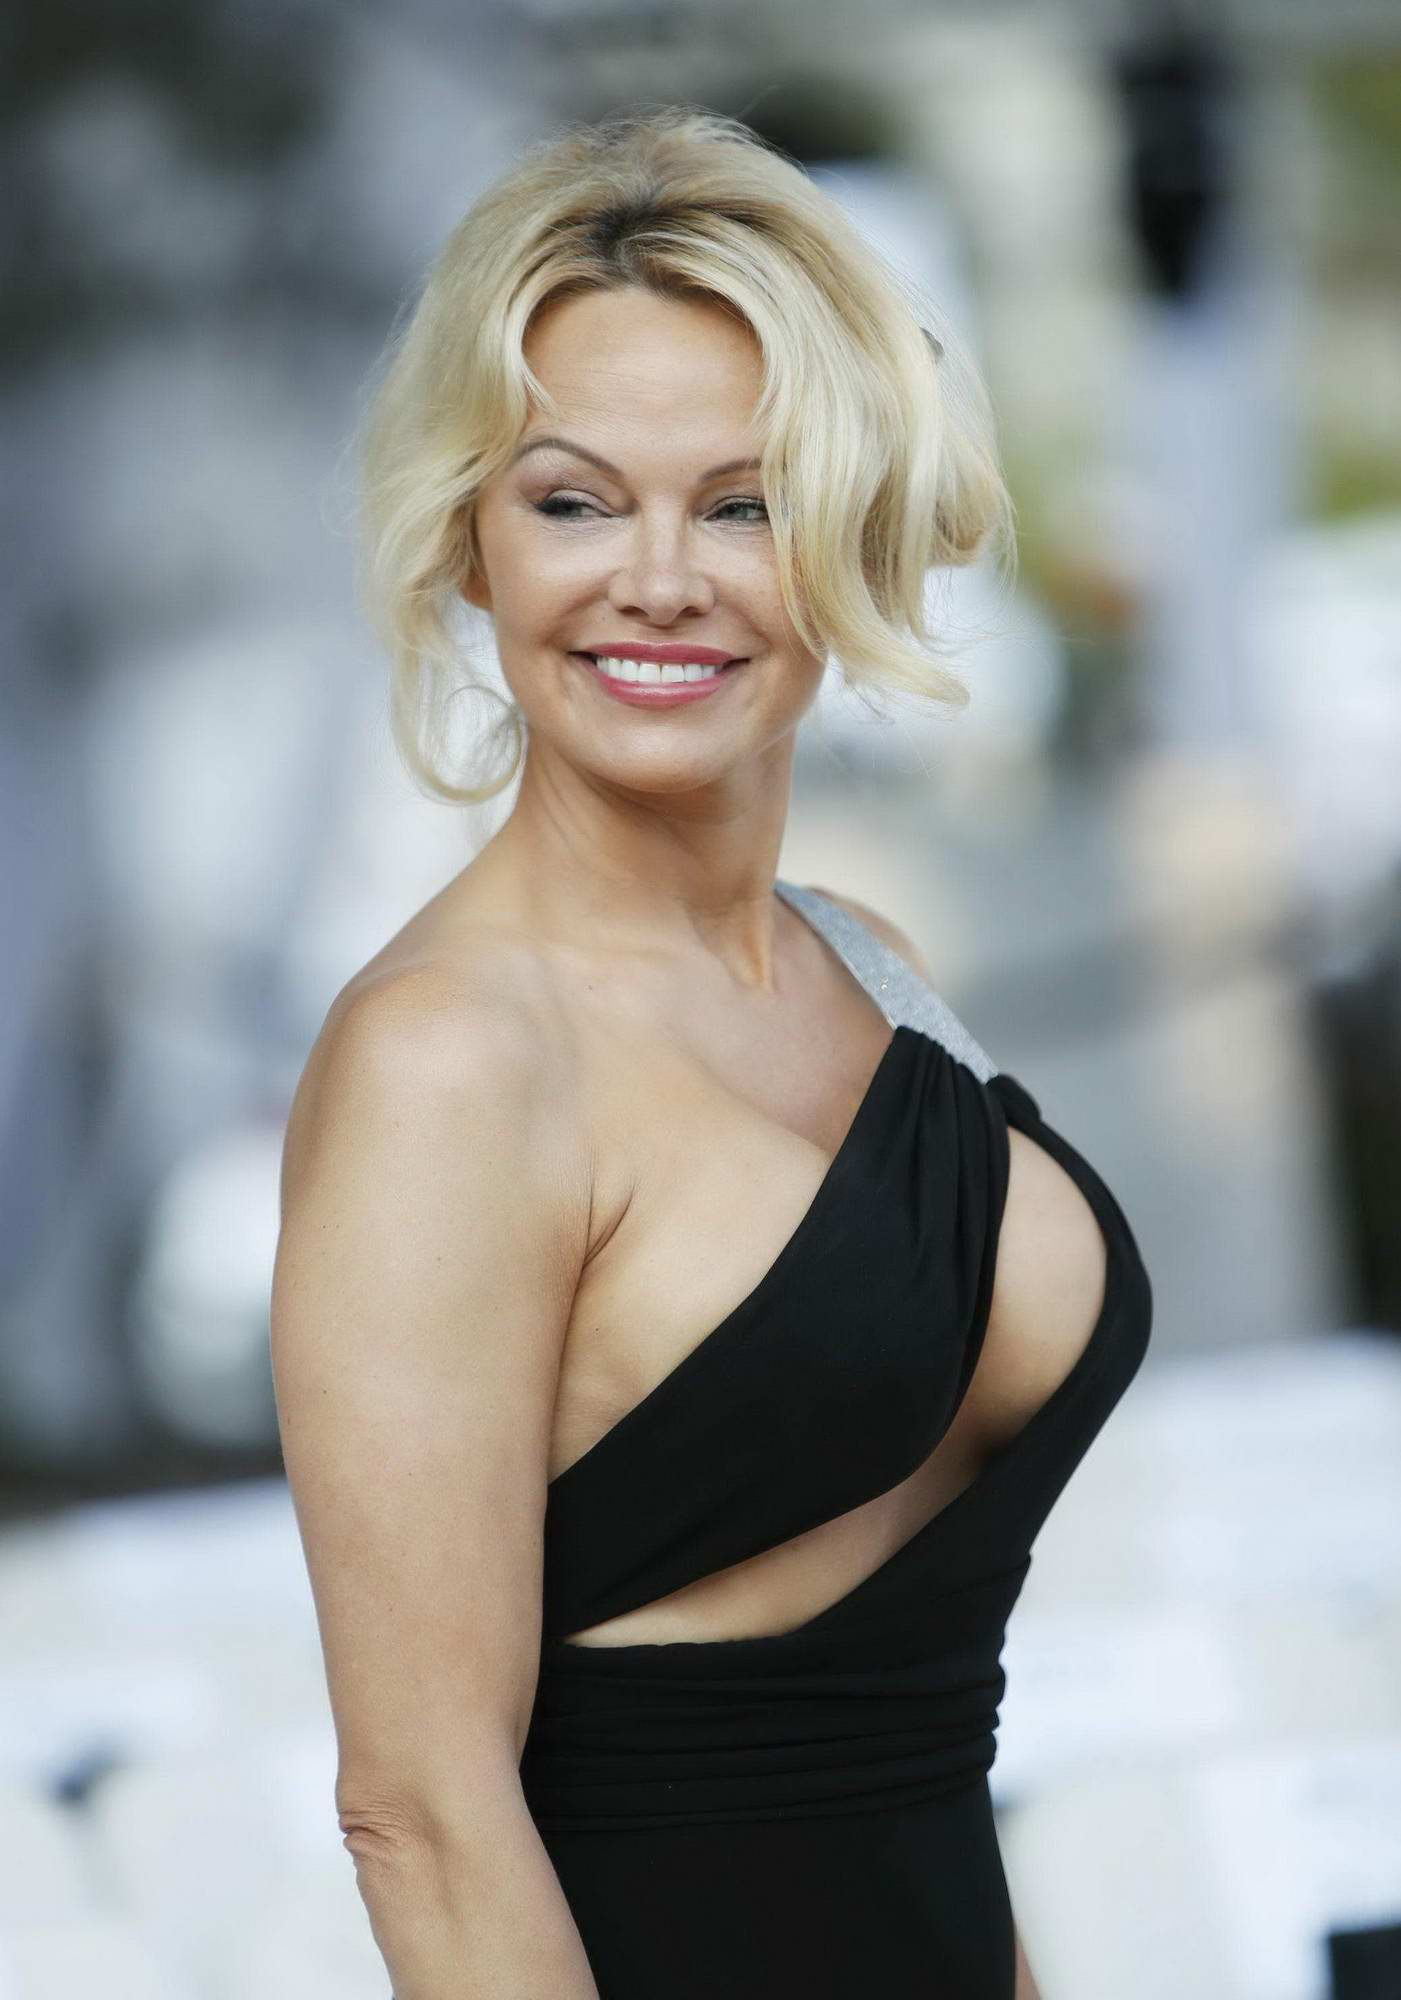 52-year-old Pamela Anderson is ready to marry again, first big disclosure on broken three weddings